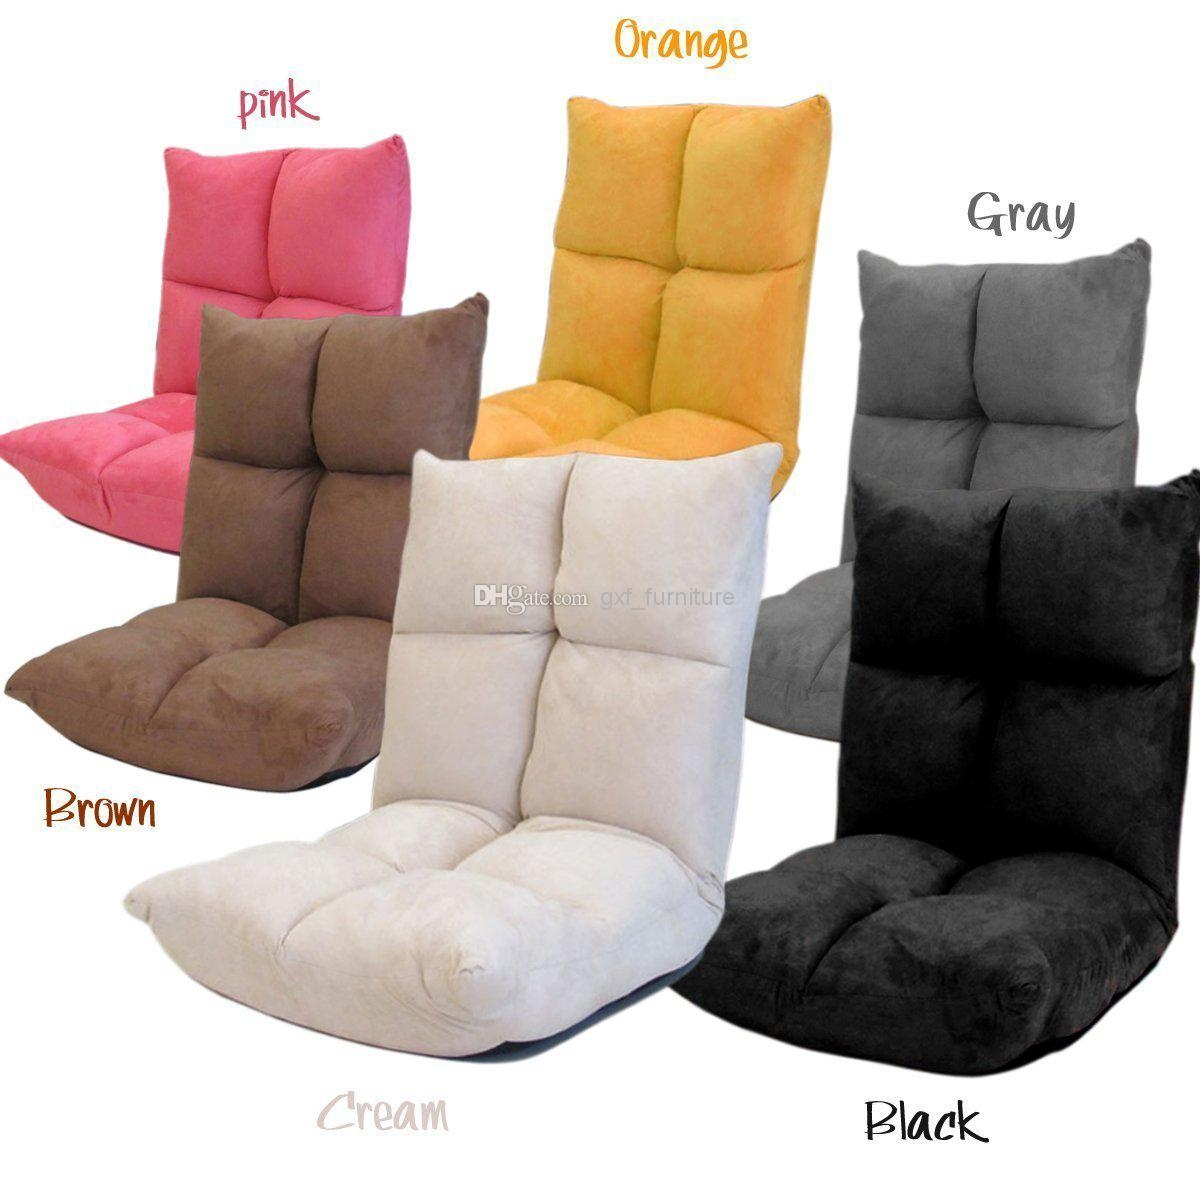 Sofas Center Magnificent Foldable Sofa Chair Picture Design Dsc Throughout Fold Up Sofa Chairs (Image 14 of 15)